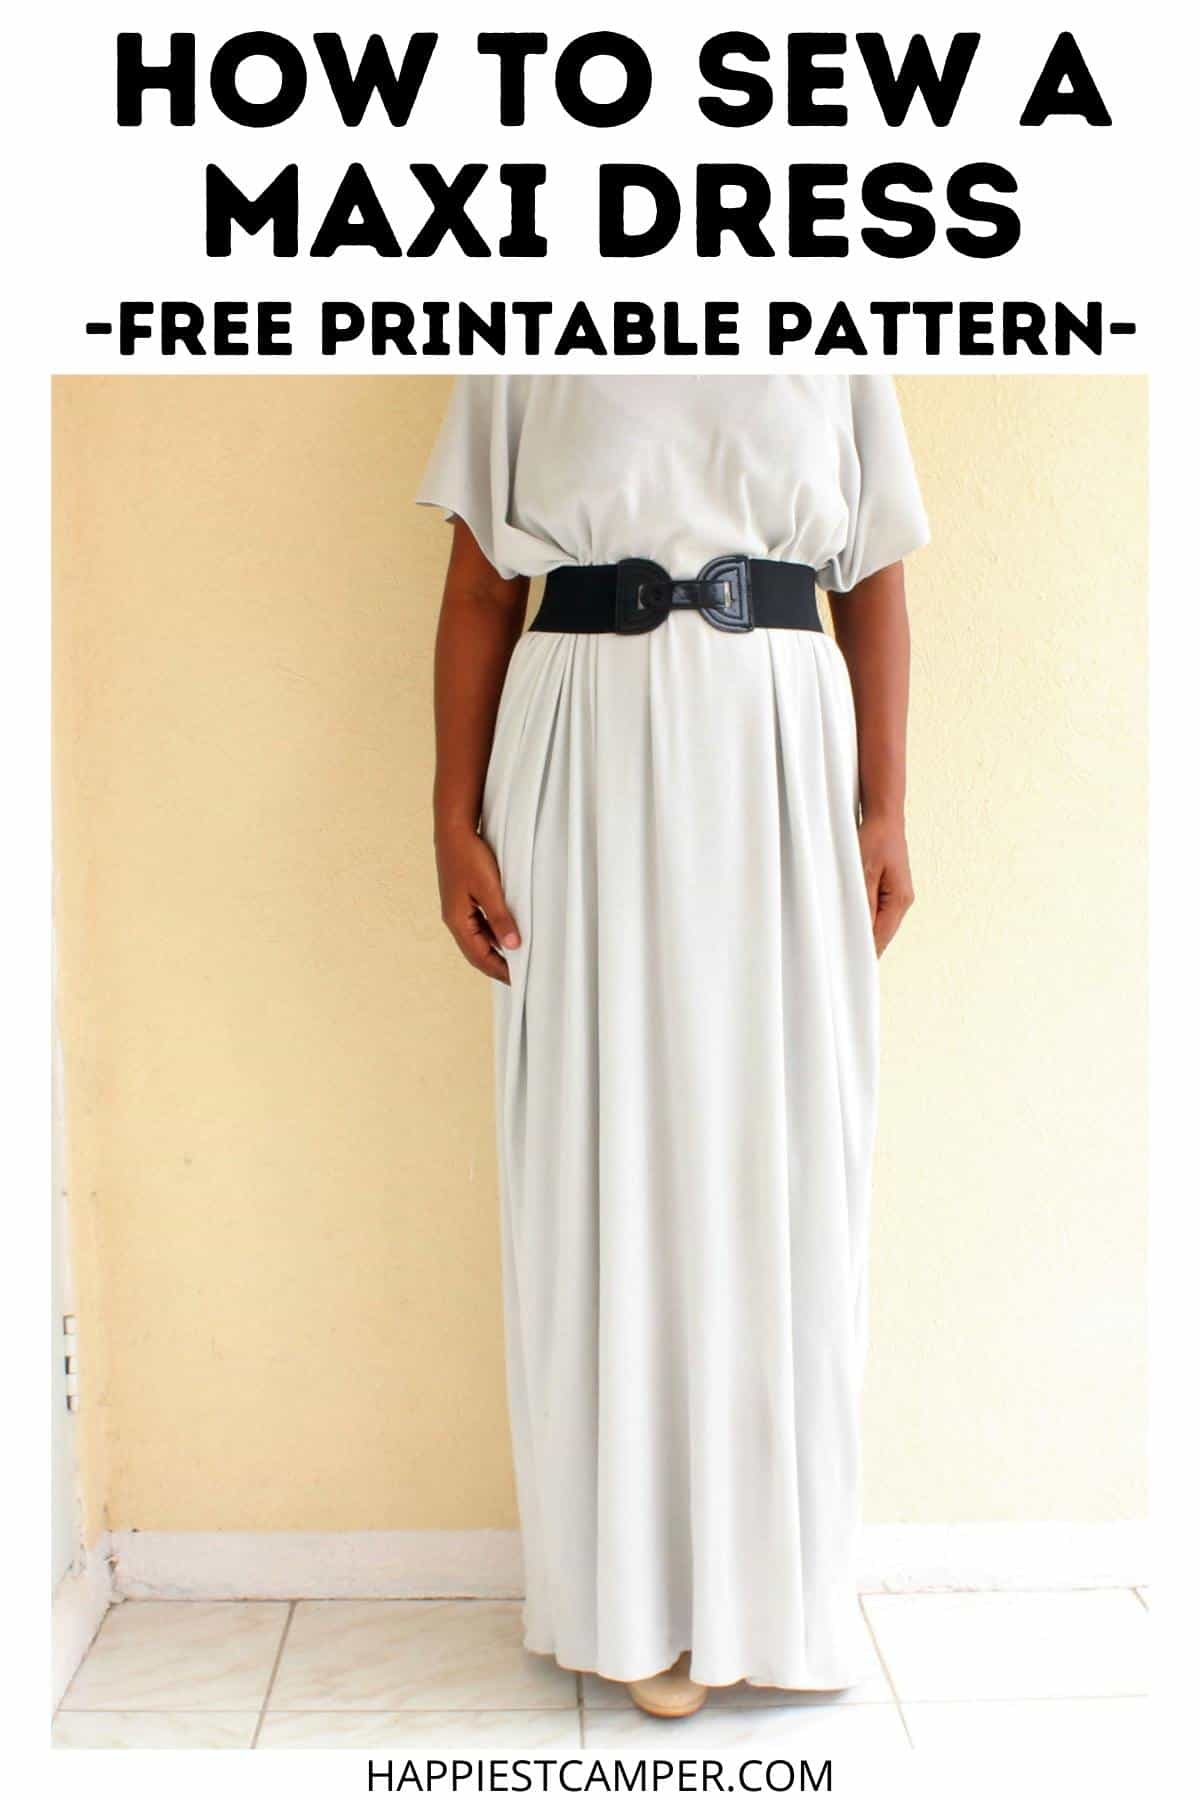 How To Sew A Maxi Dress - Free Printable Pattern